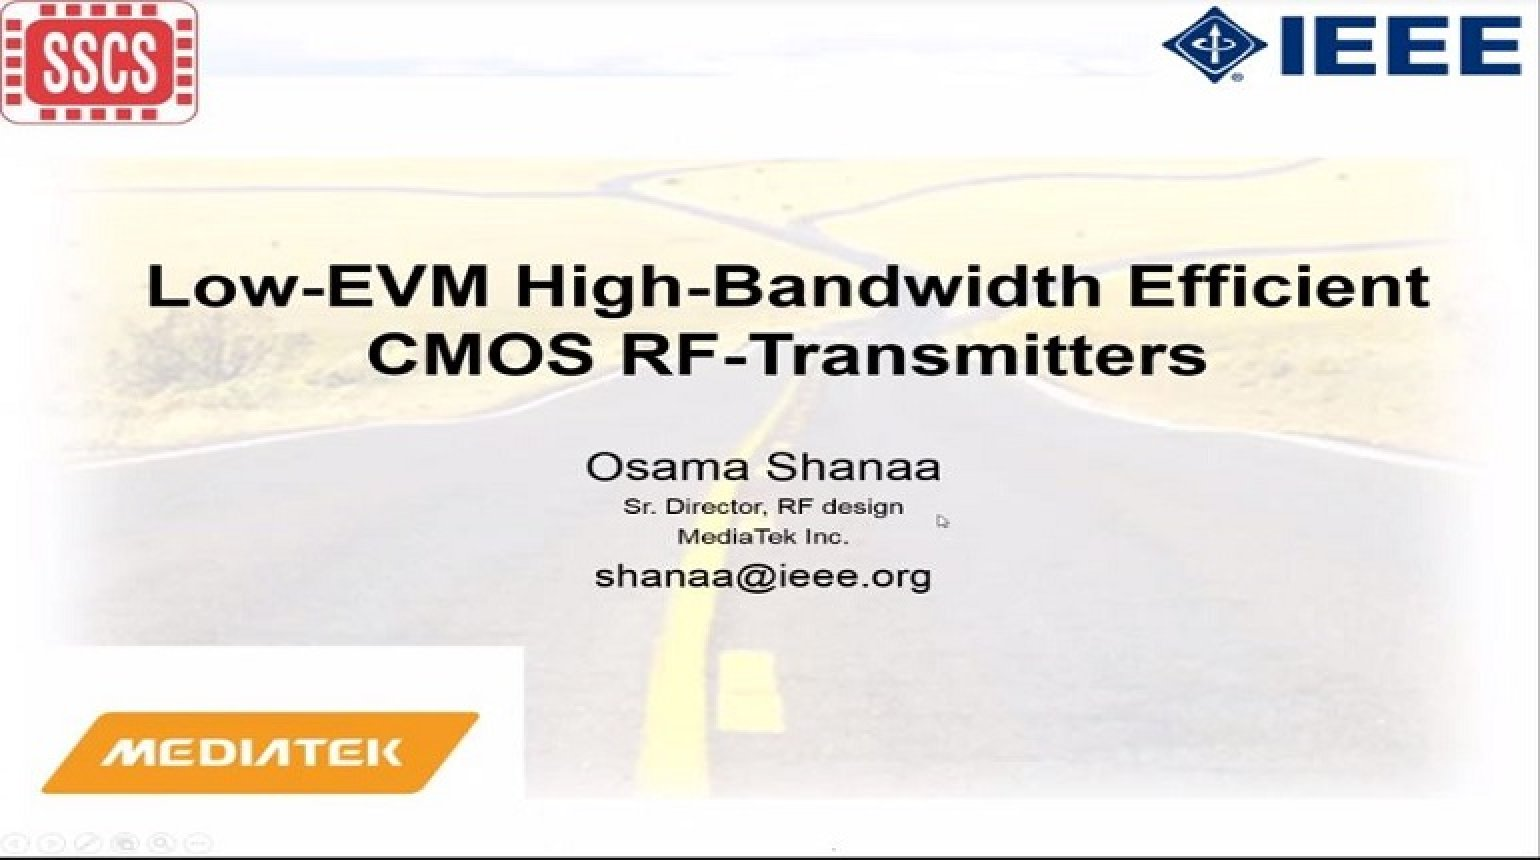 Low-EVM High-Bandwidth Efficient CMOS RF-Transmitters Video